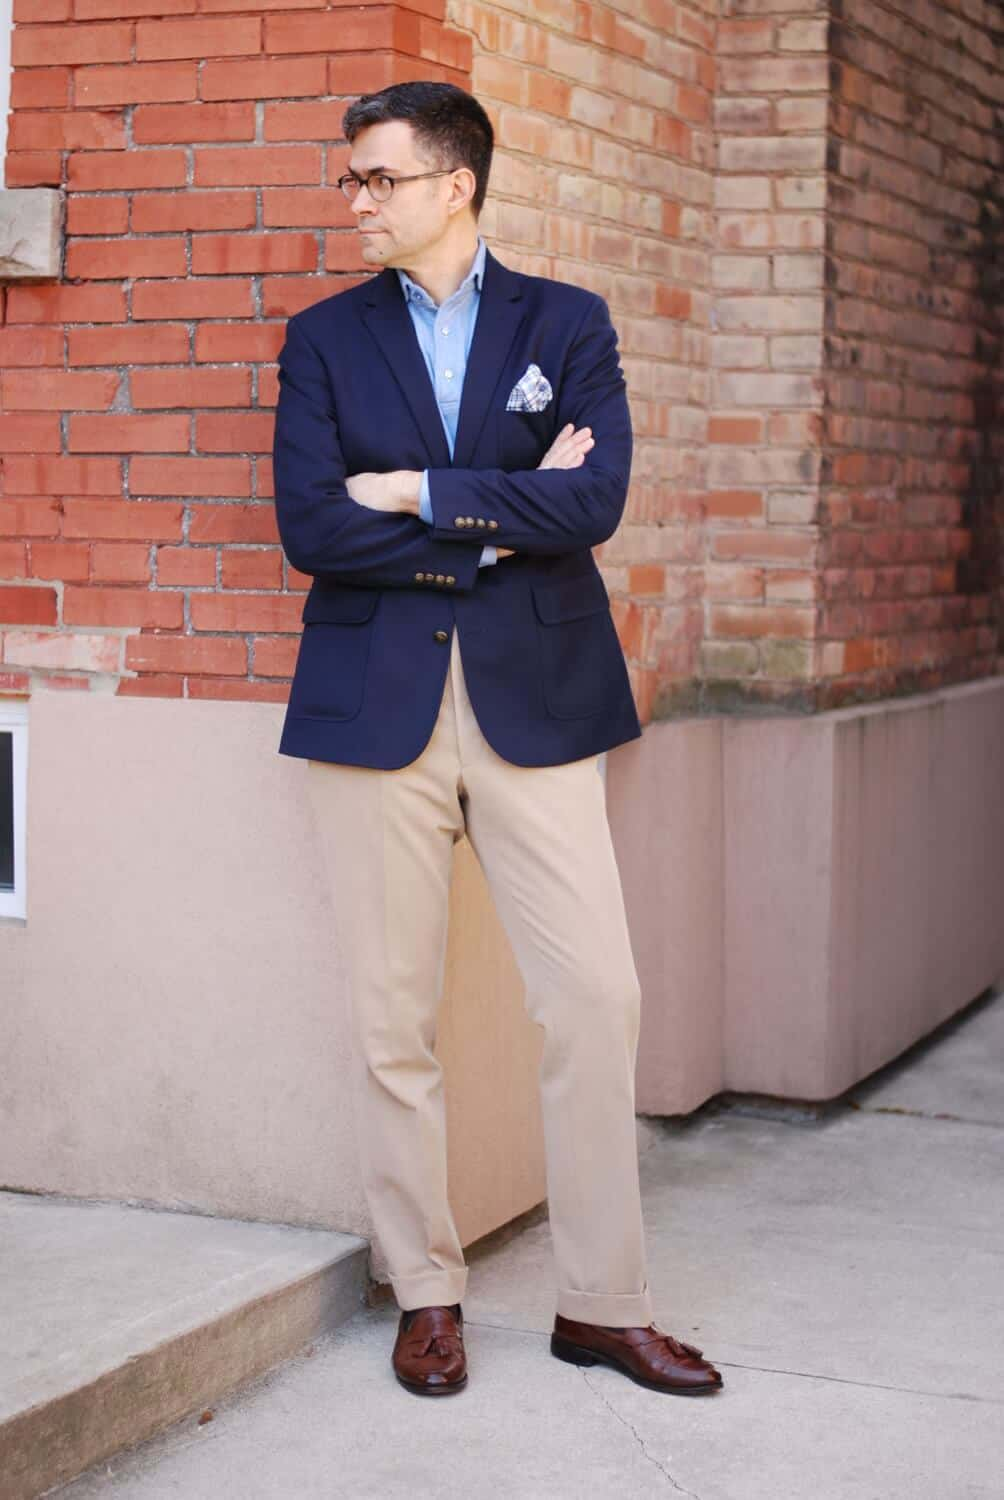 Business Casual Outfit Single Breasted Blazer with popover shirt, cotton pocket square, khakis and brown tassel loafers by hogtownrake